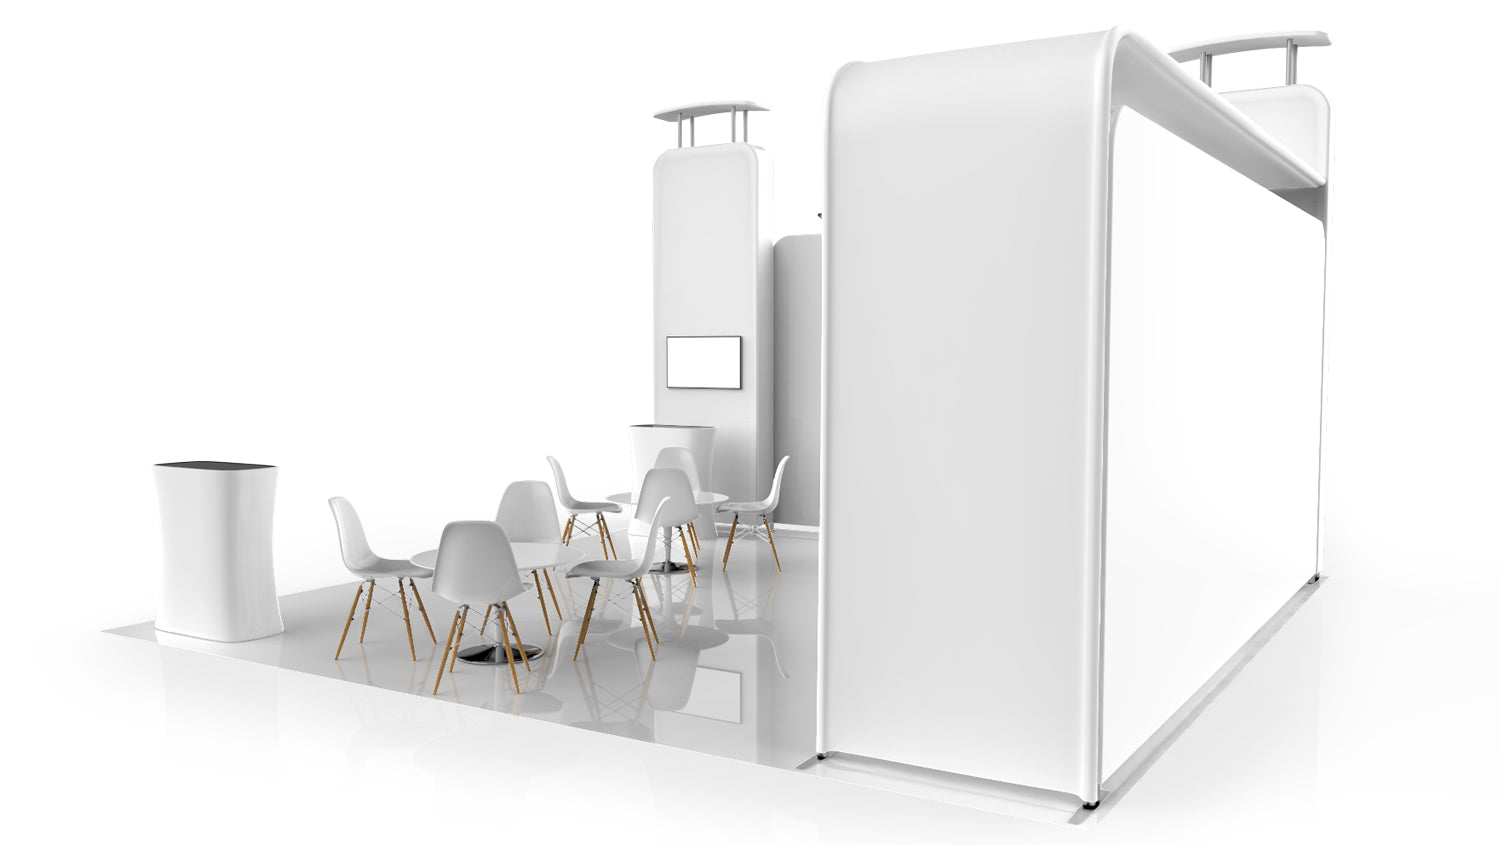 20x20 booth layout 3D model Pro-Package C right view